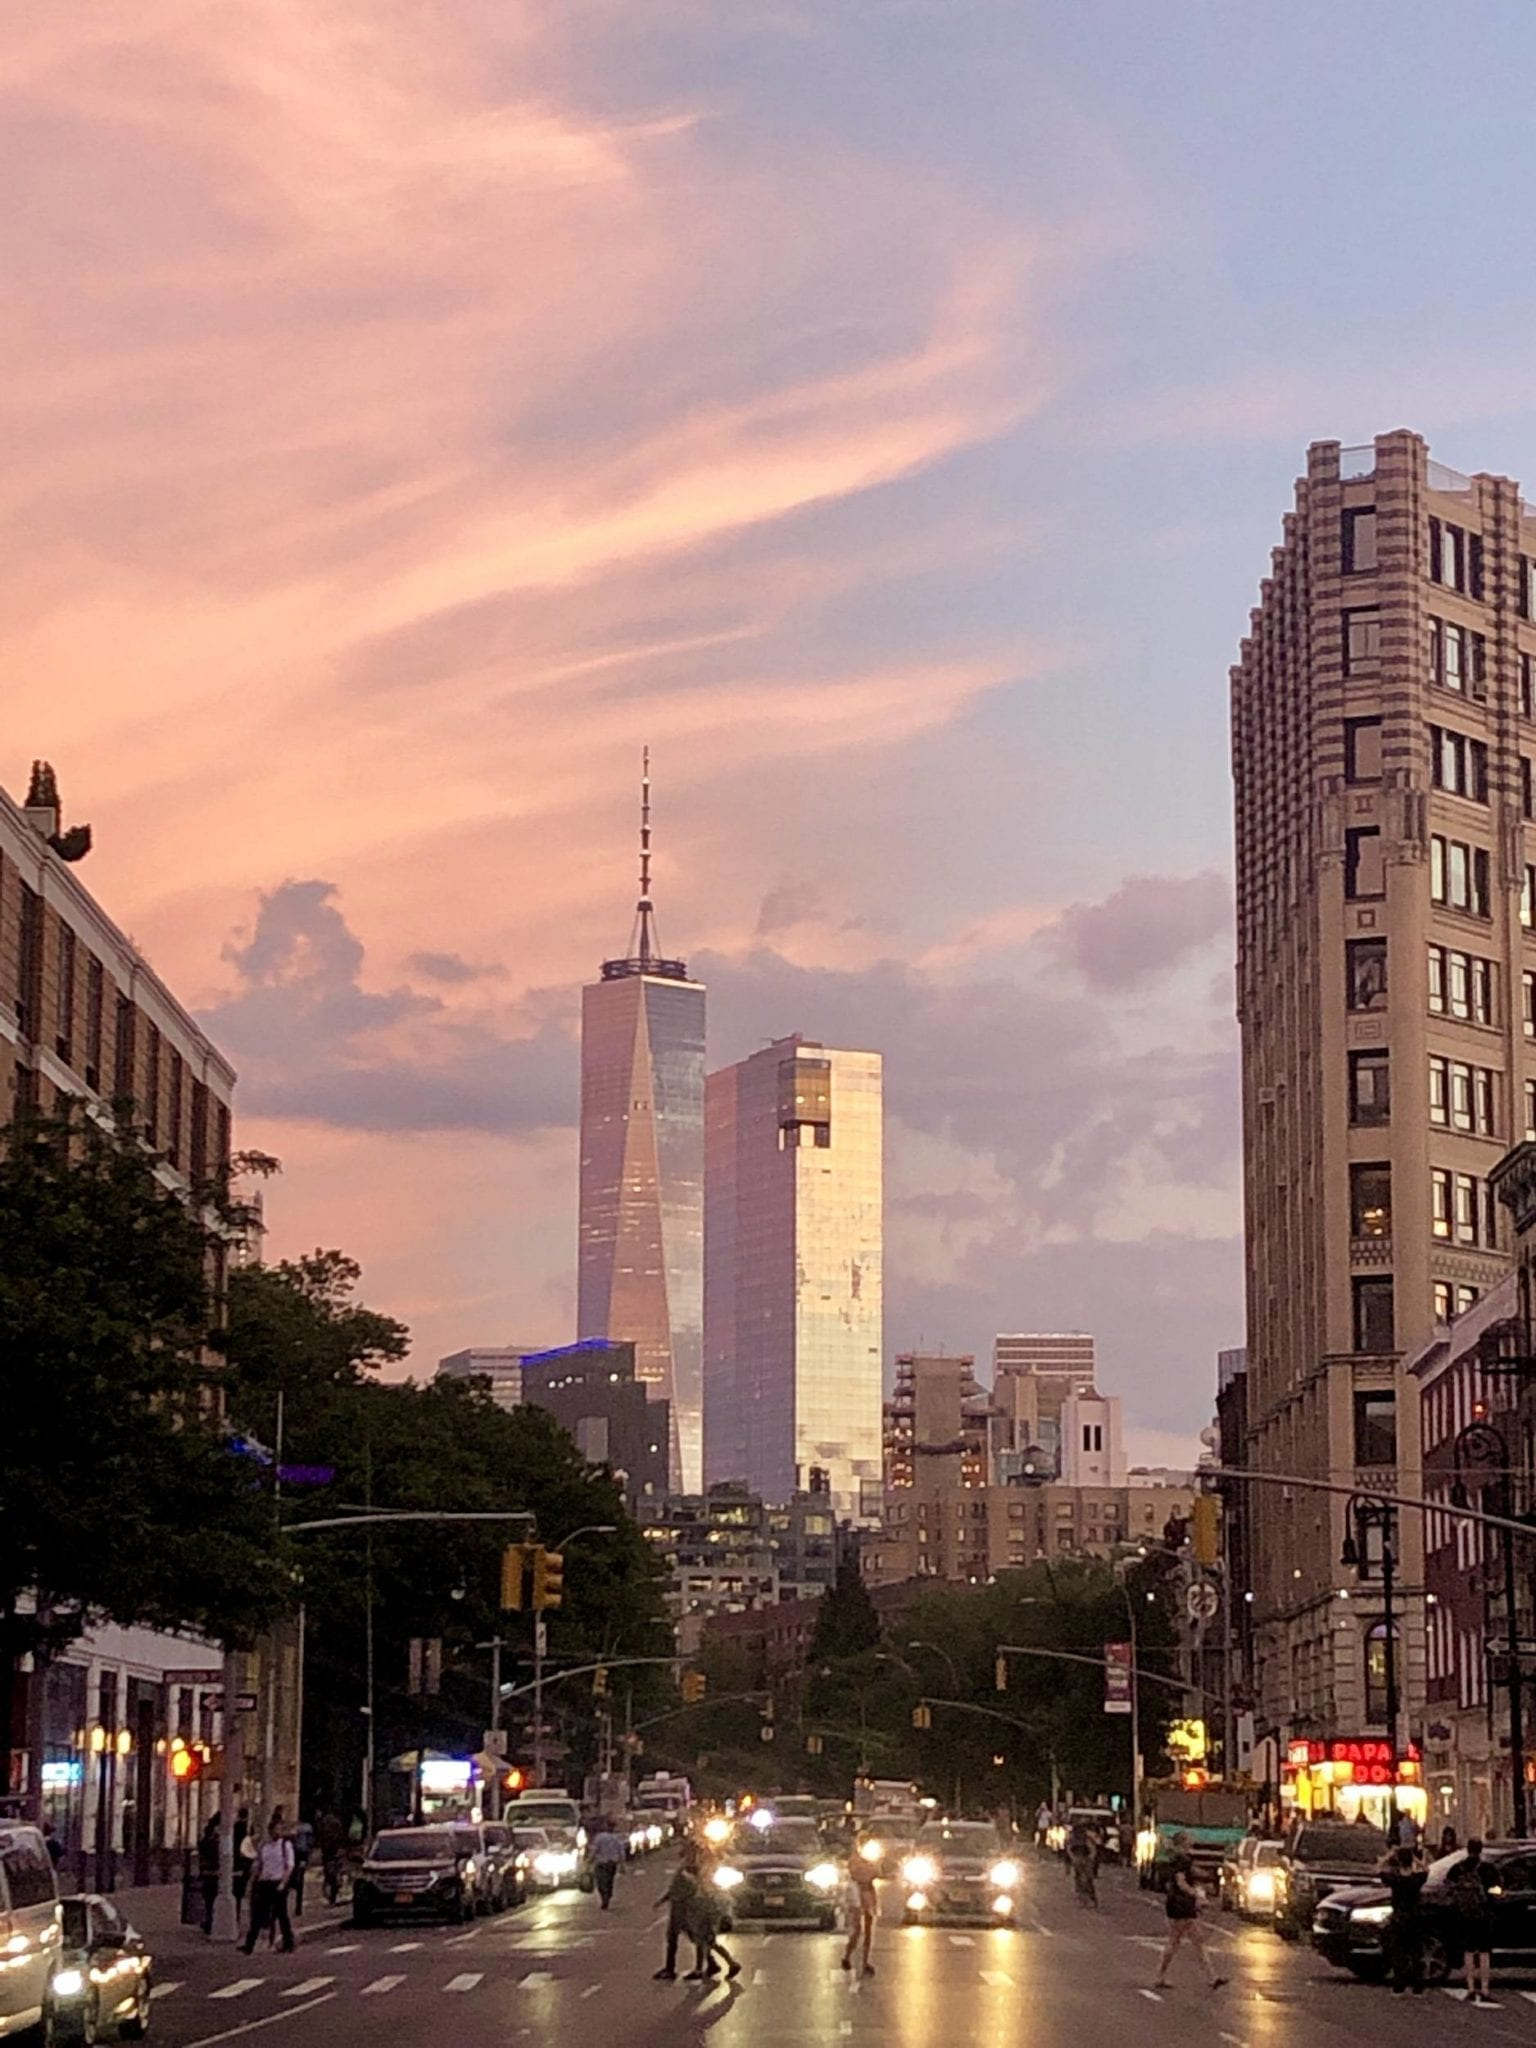 The One World Trade Center building in New York is illuminated by a pink and blue sunset streaked with clouds. The view is facing straight down Sixth Avenue and there are a few sets of headlights facing the camera.